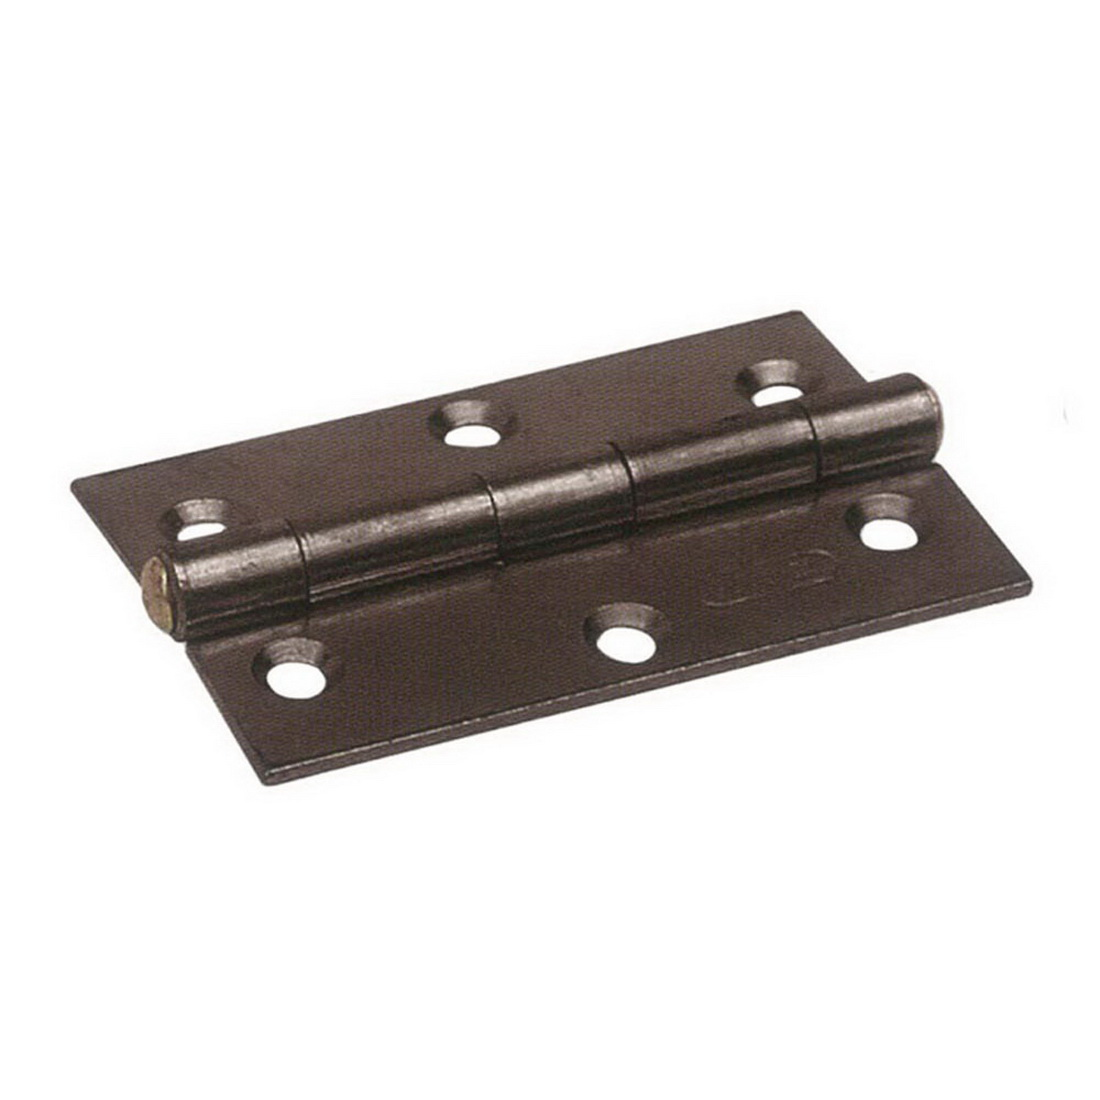 60 x 90mm Loose Pin Narrow Butt Hinge Florentine Bronze